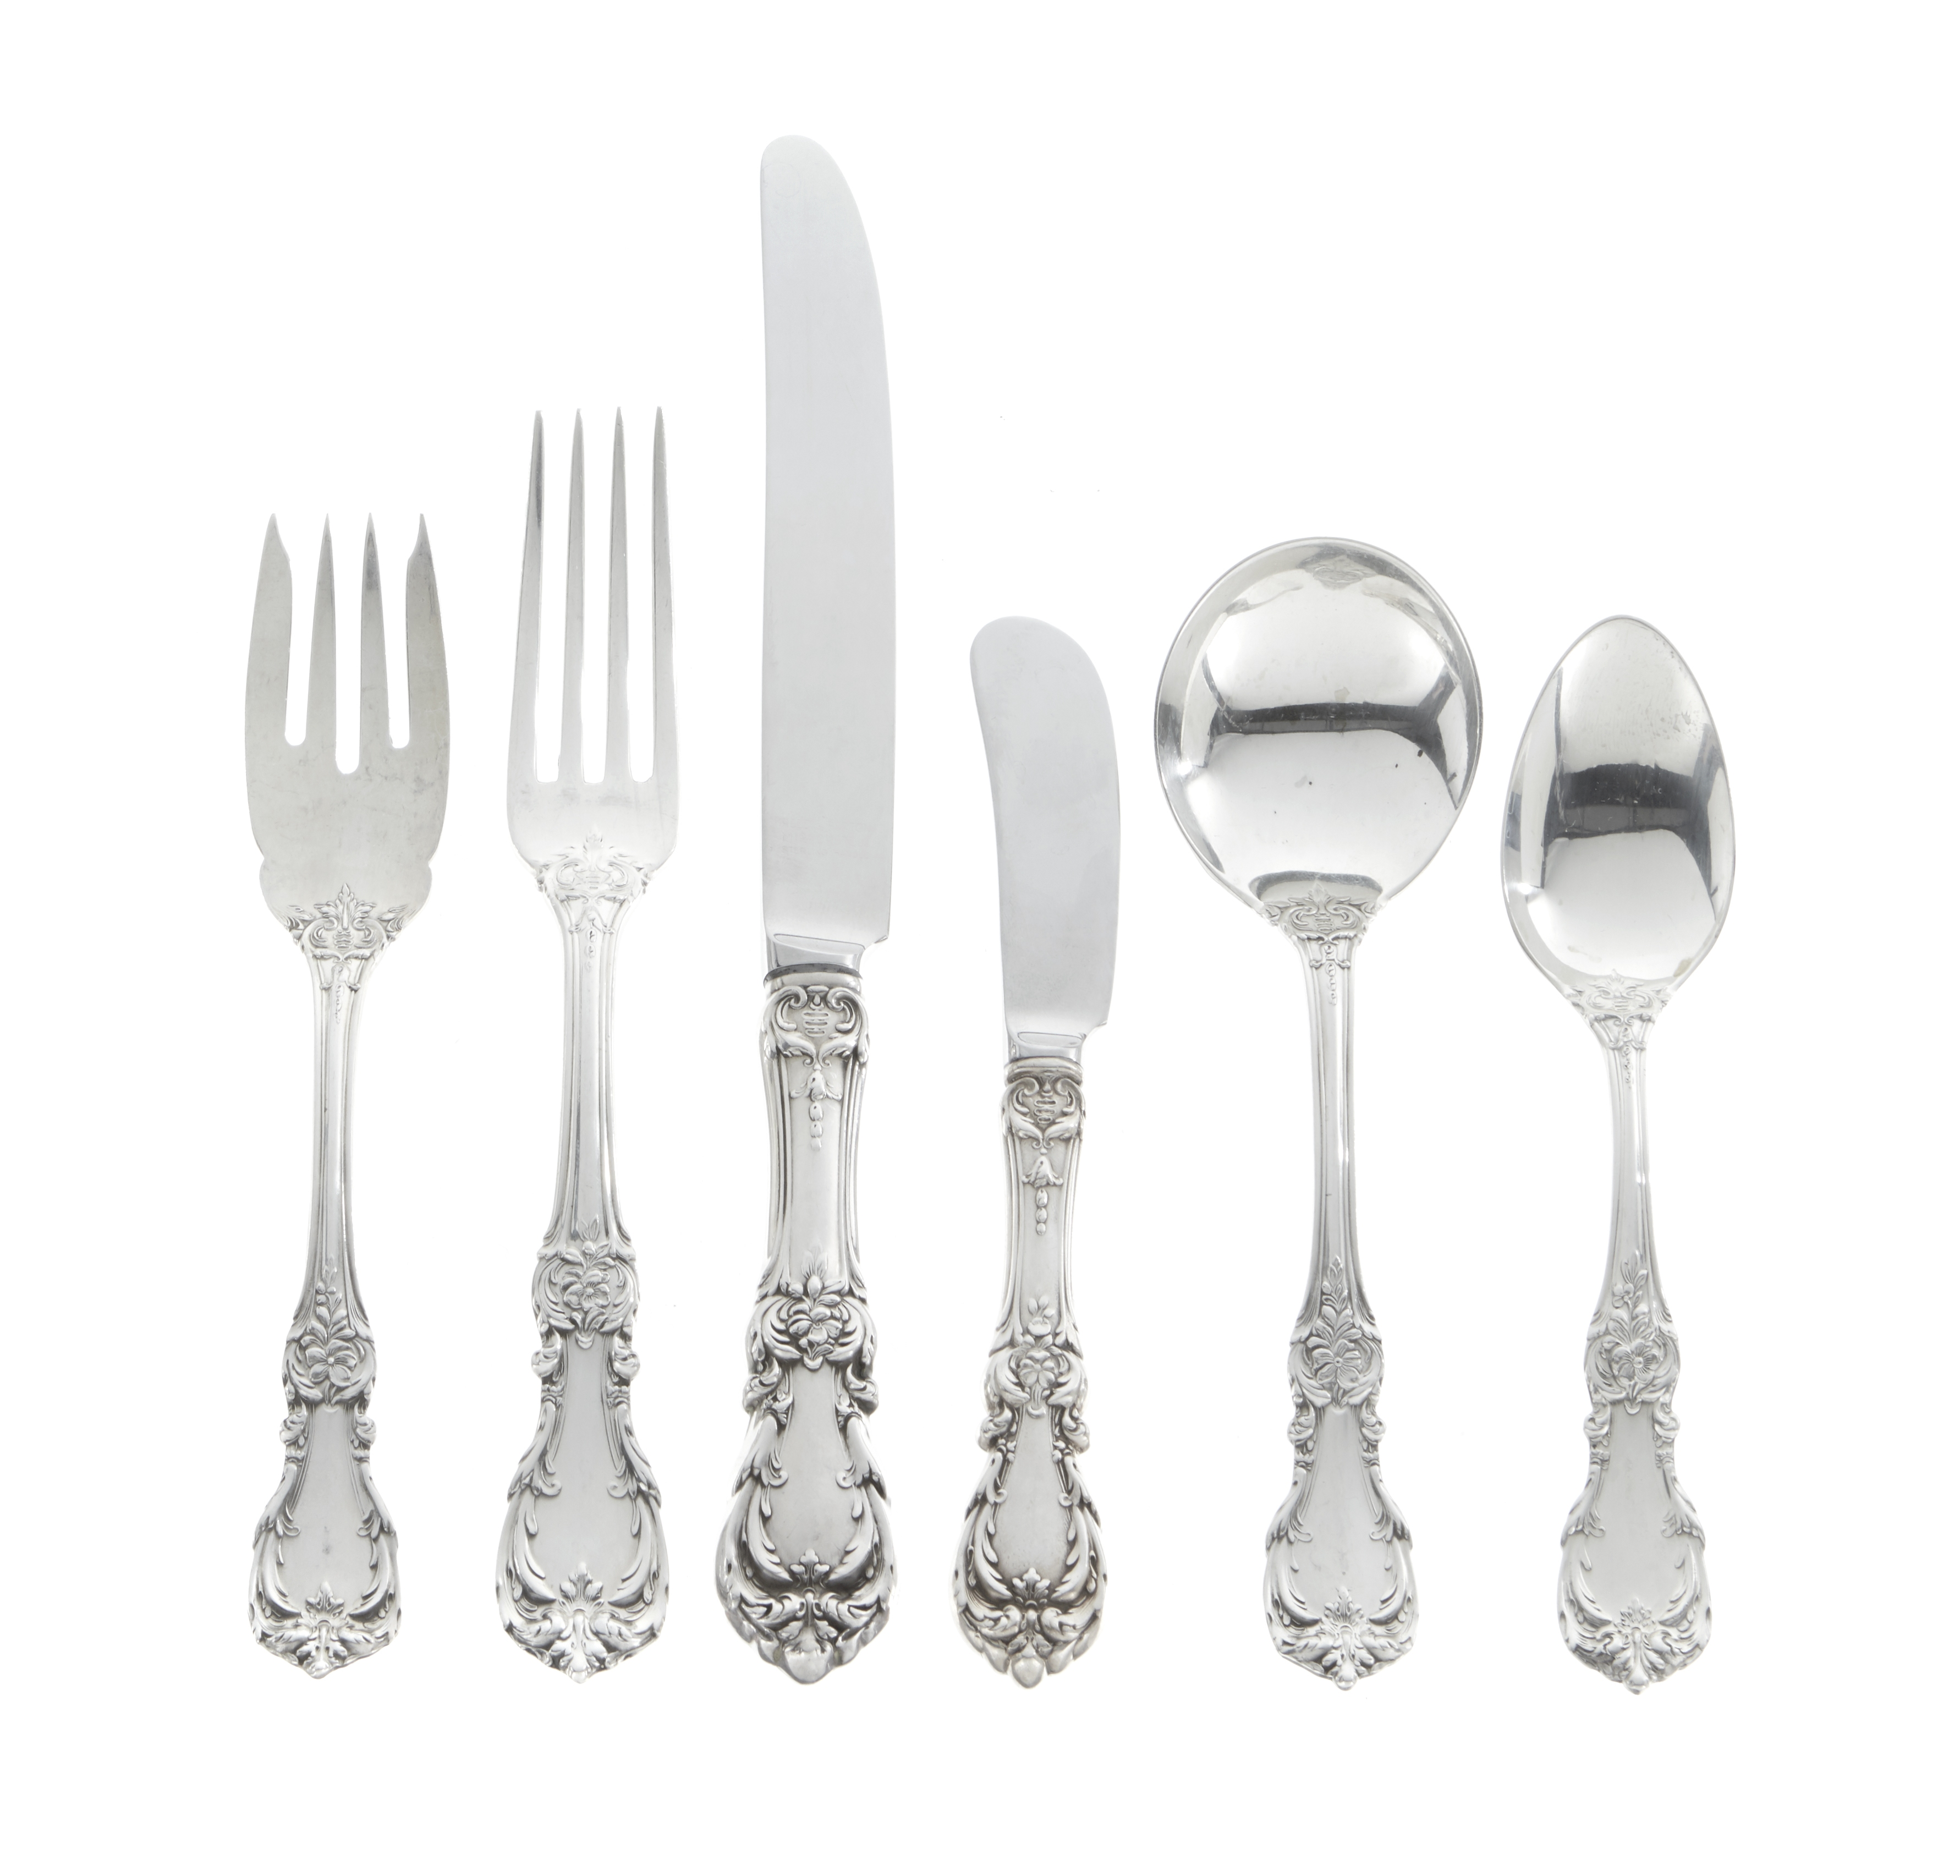 An American sterling silver partial flatware service by Reed & Barton, Taunton, MA, 20th century